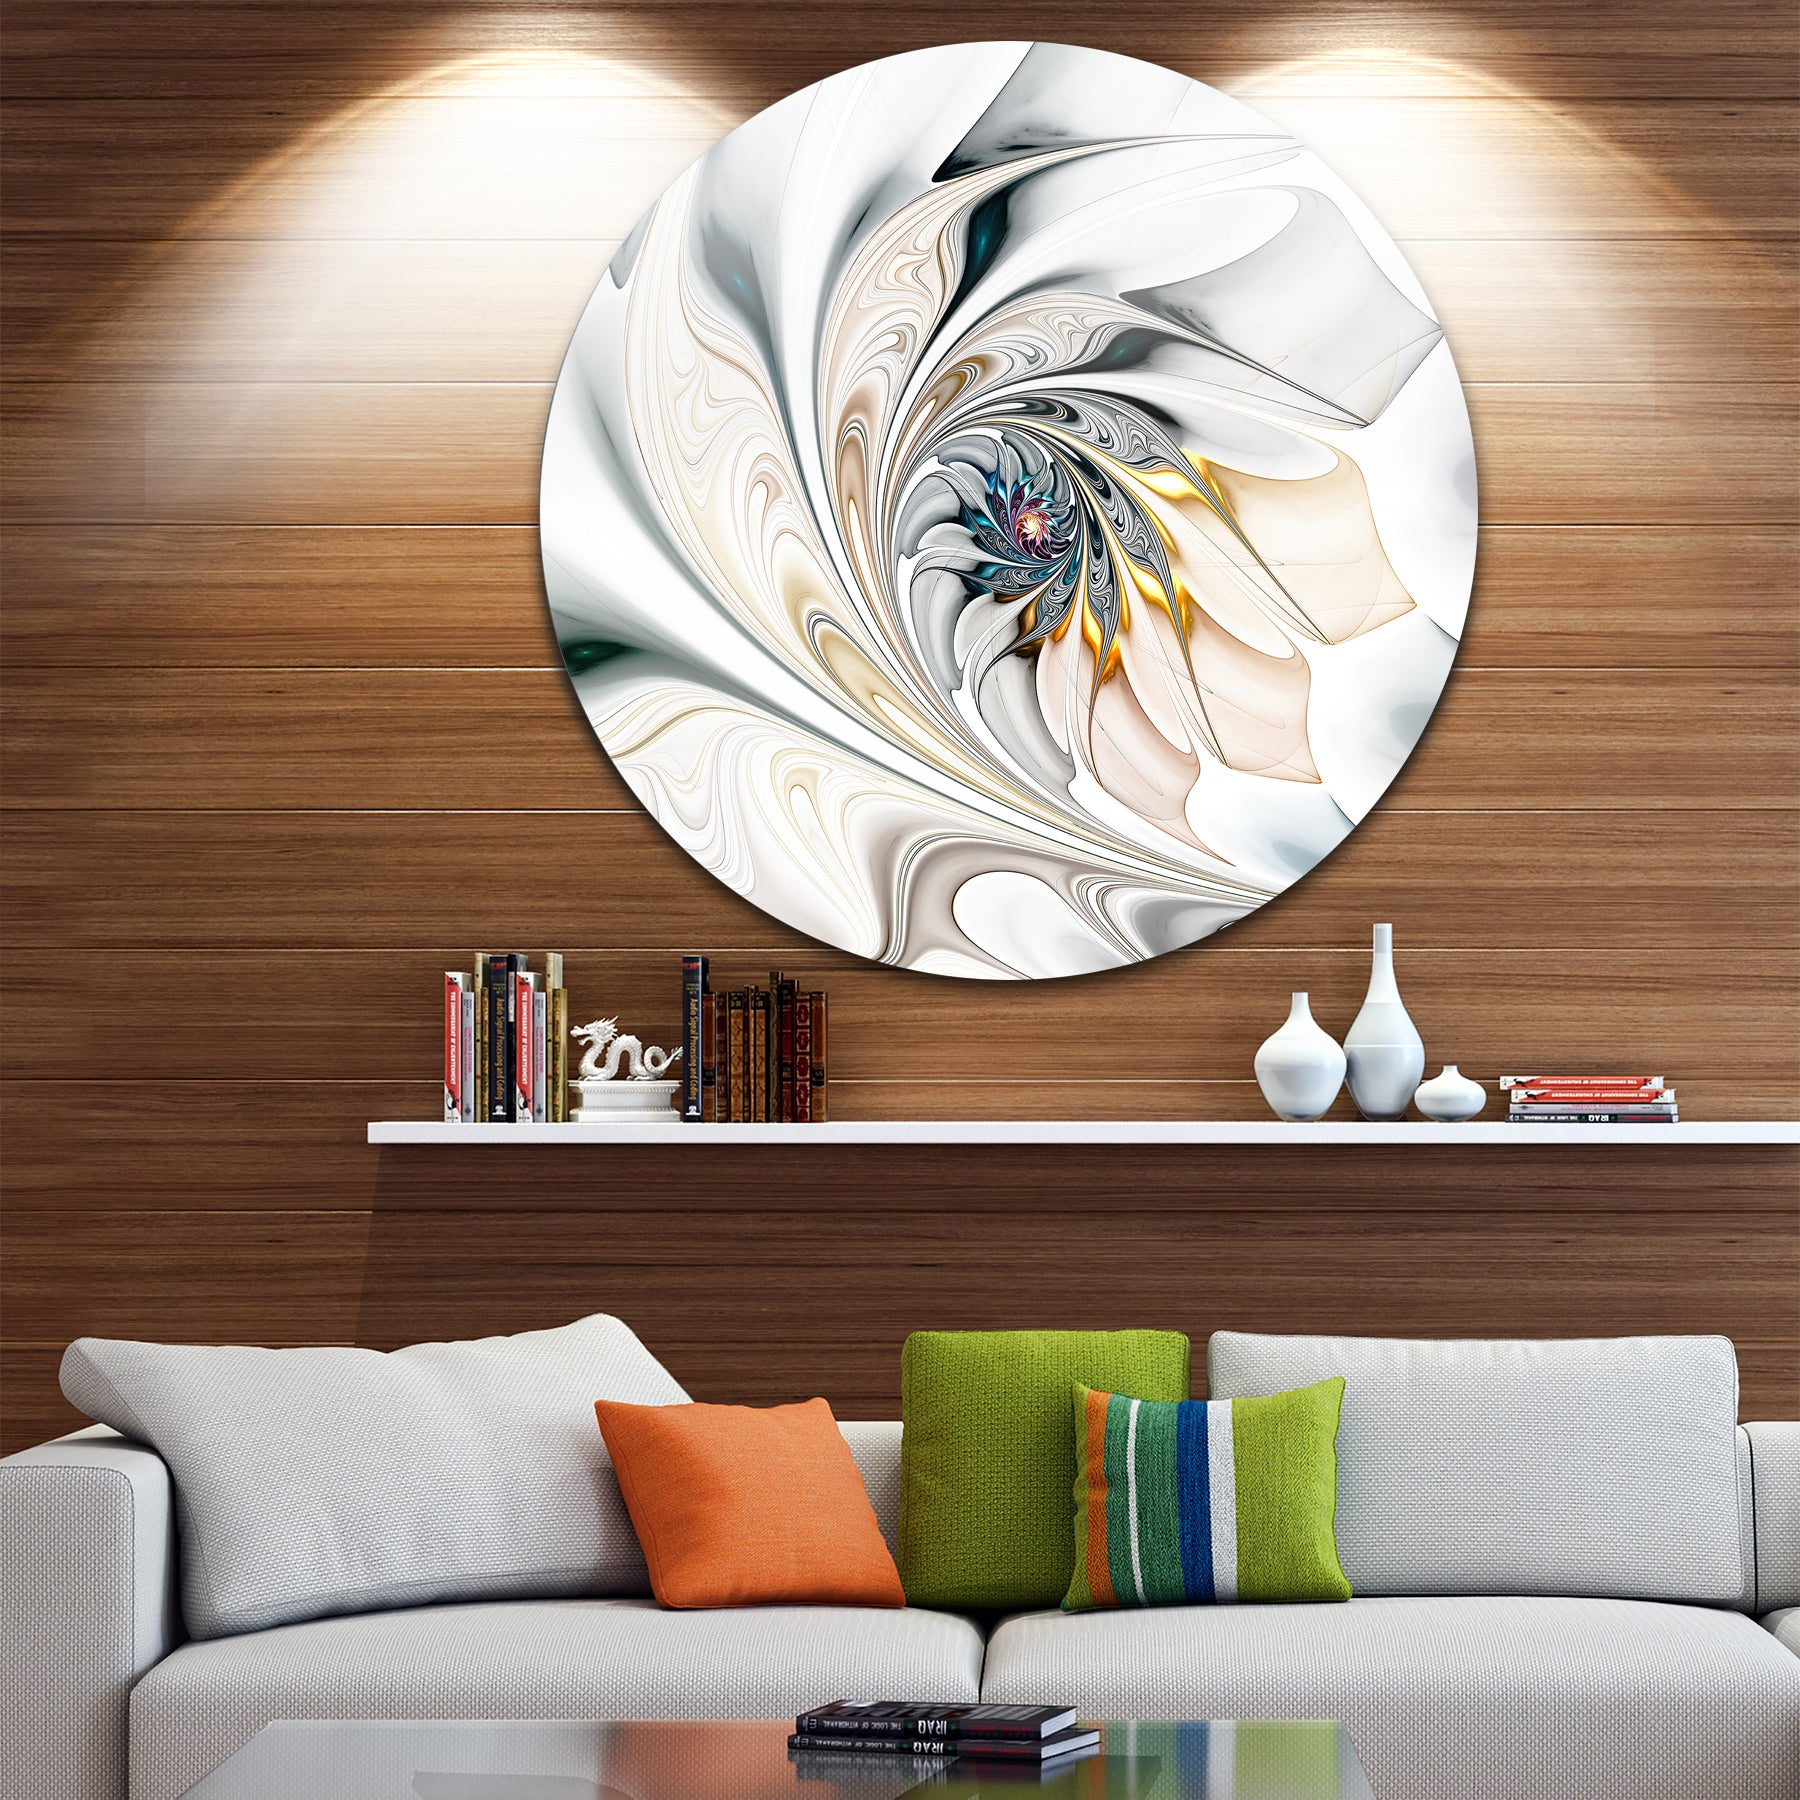 Find Great Art Gallery Deals Shopping At Overstock For 4 Piece Metal Wall Decor Sets (View 6 of 20)